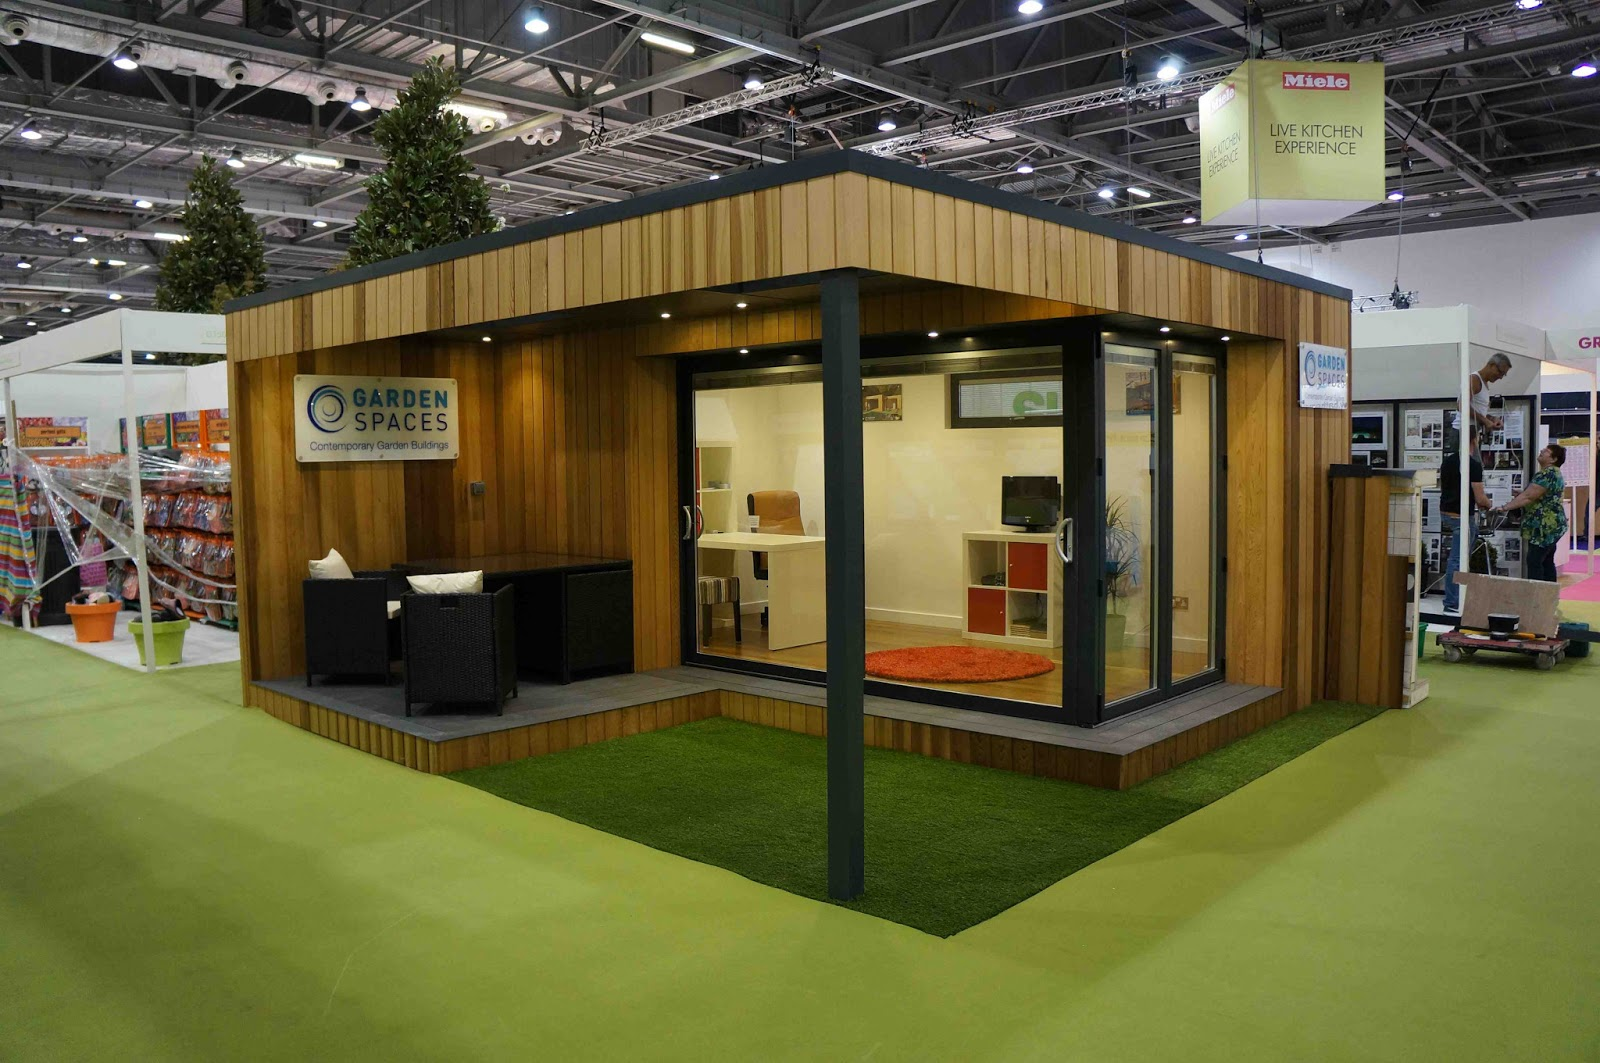 Shedworking garden offices at grand designs live for The garden office